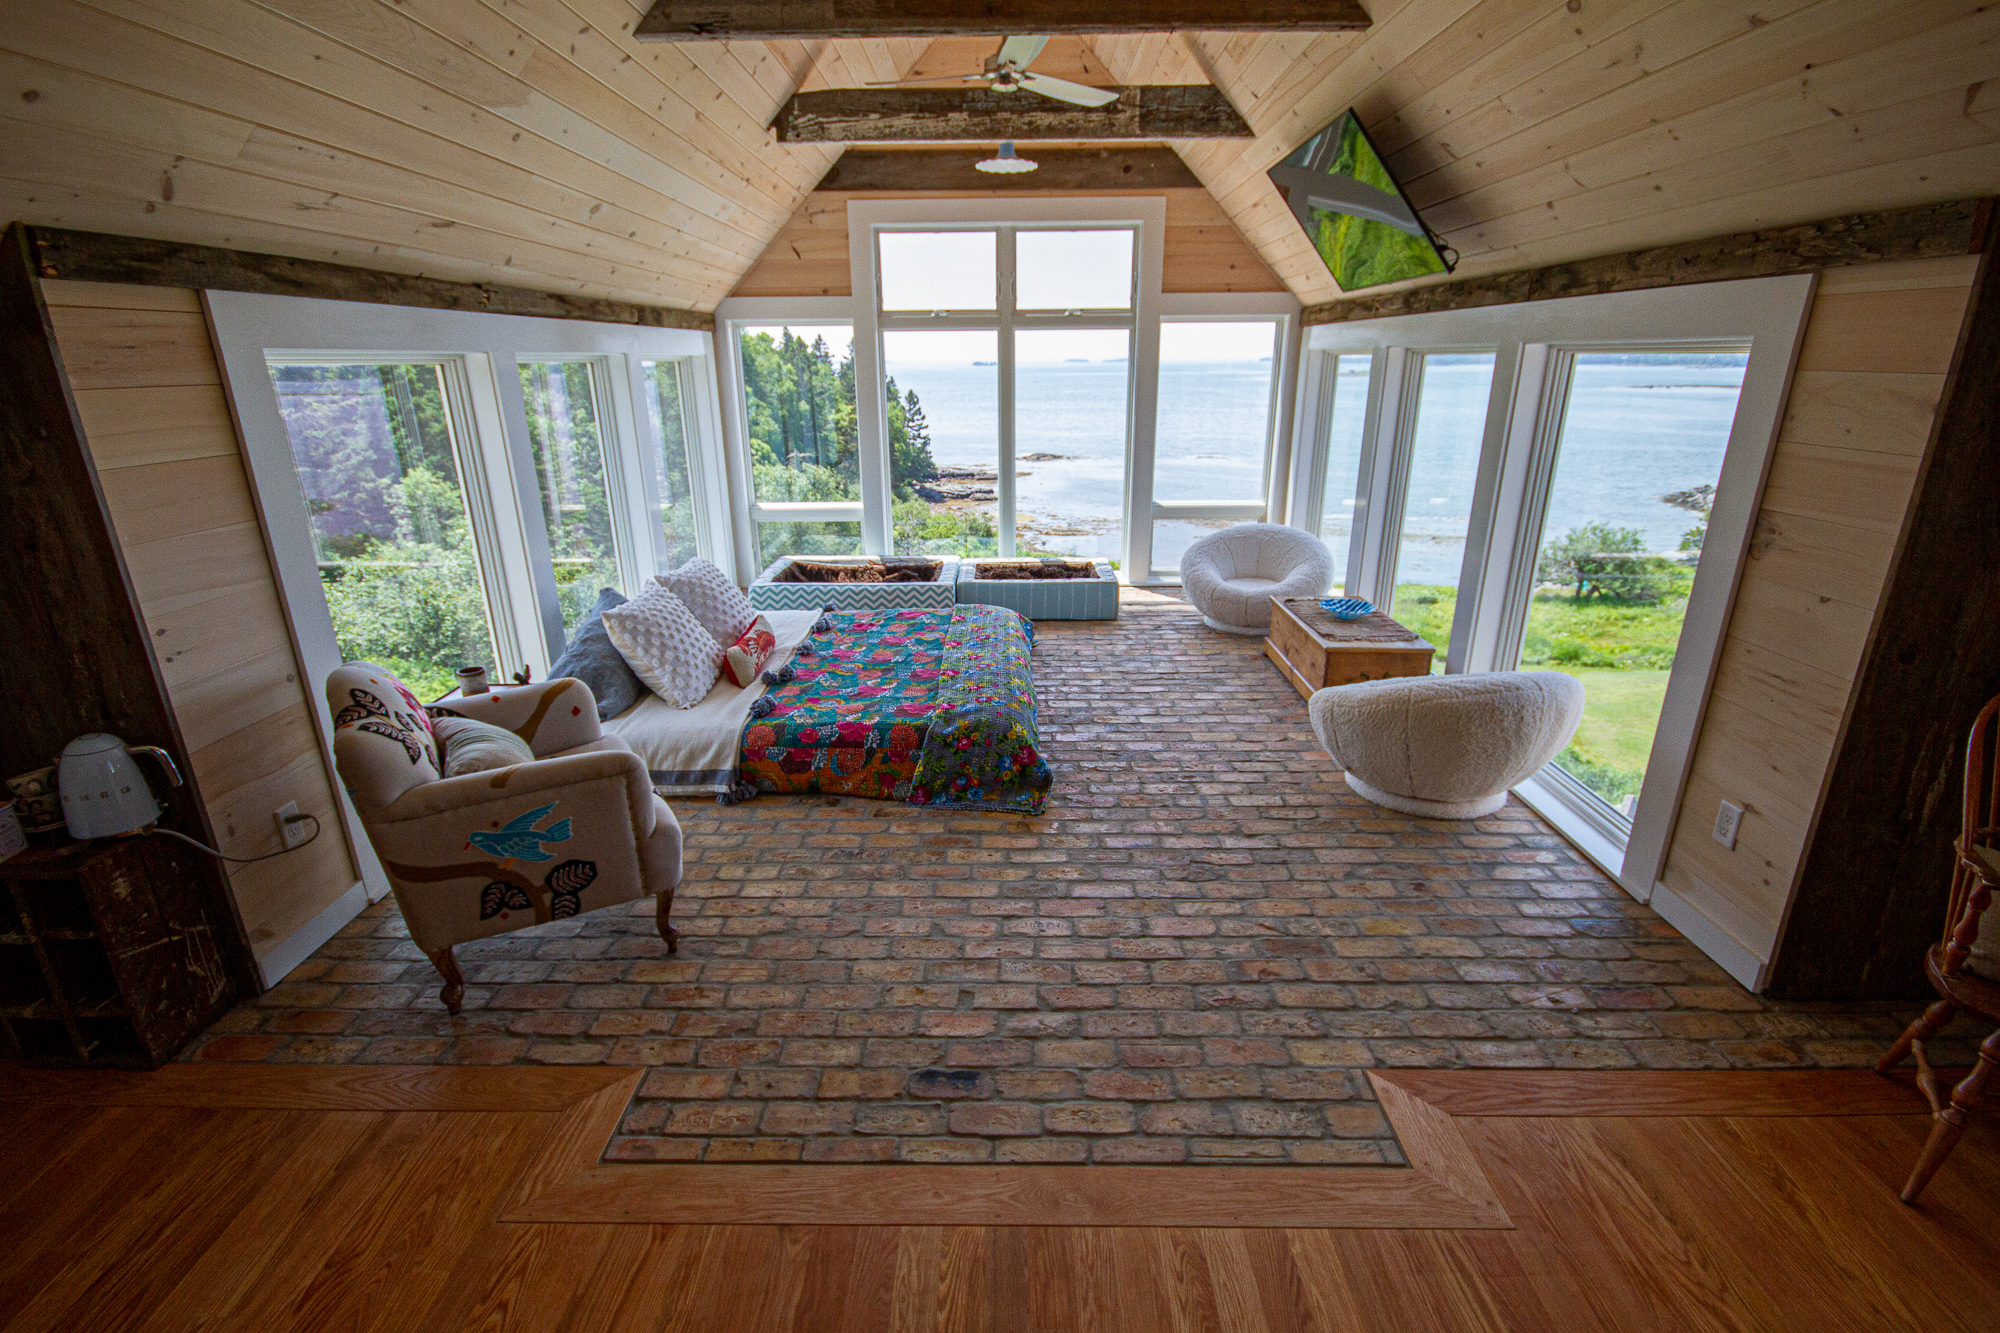 Carpentry & contracting in Washington/Hancock counties - We pride ourselves in working on all job types: new construction, renovations, general contracting, custom woodworking, exotic materials— we love it.Off grid cabins, tiny homes, unique settings/building situations. We can do it all.View projects ➝